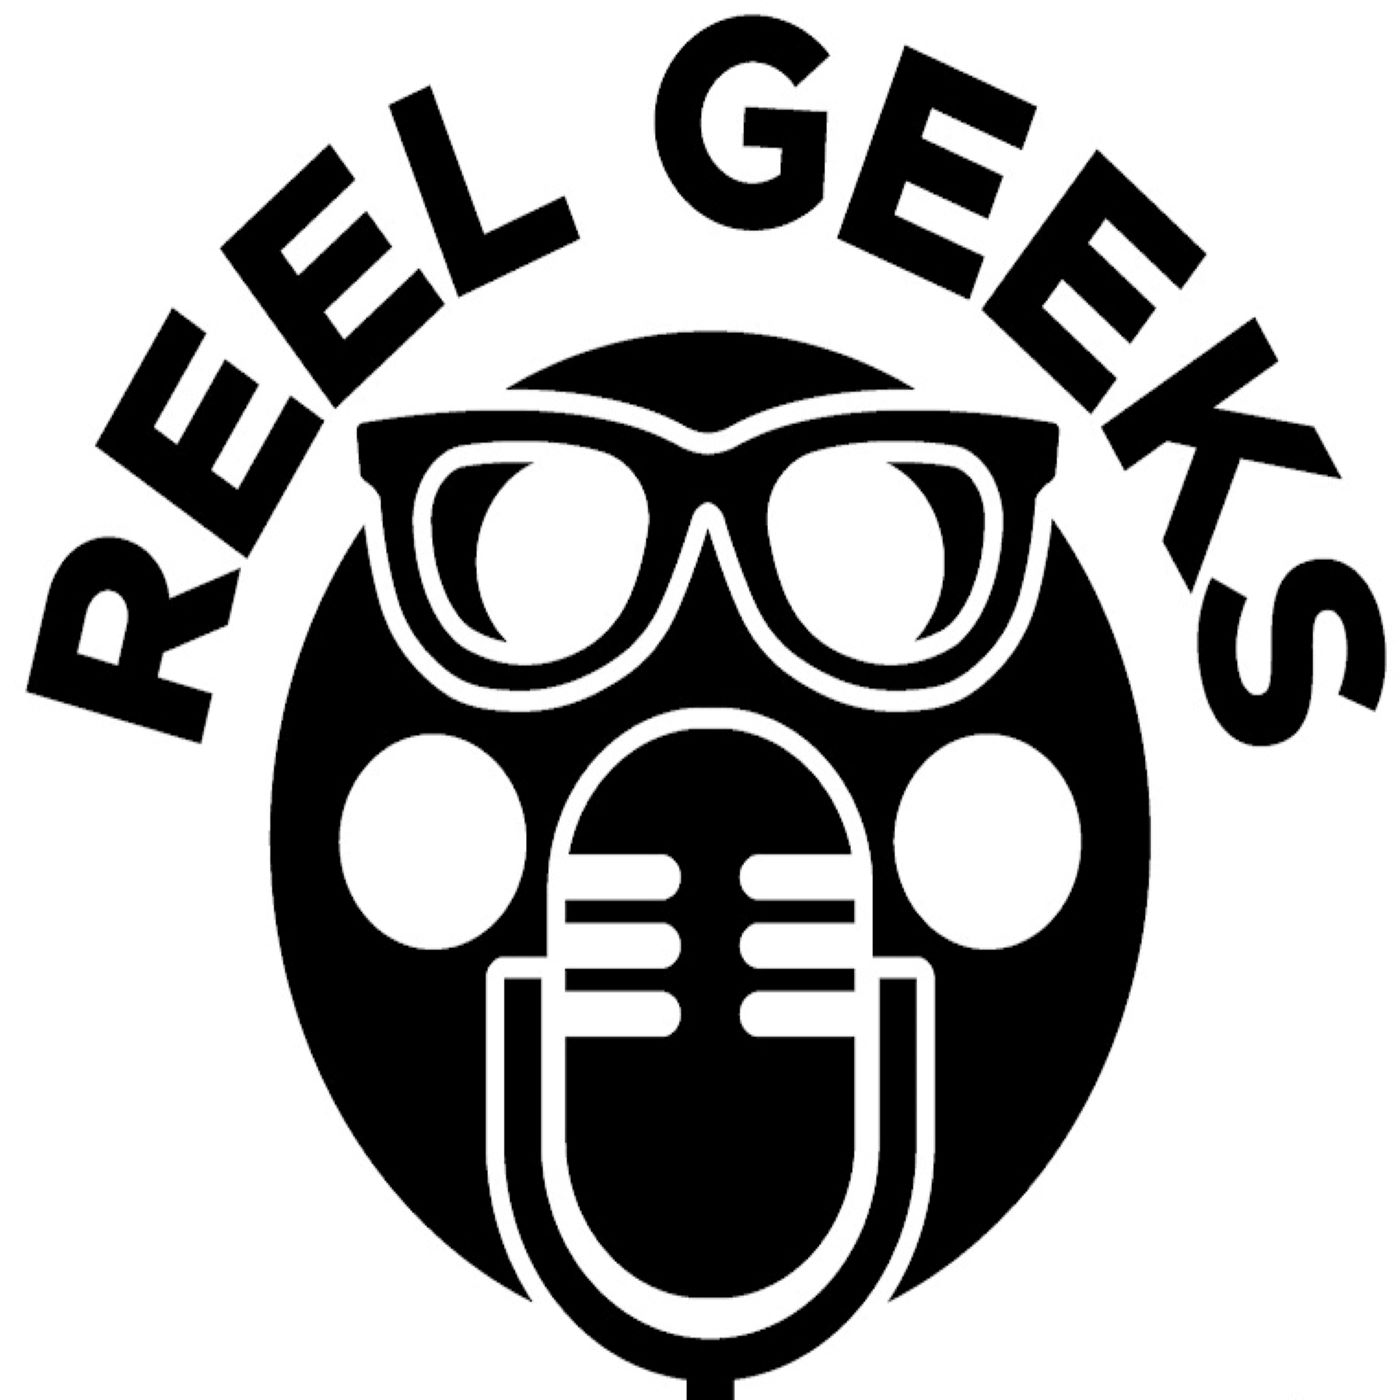 Reel Geeks Podcast - In this film geek podcast Ben Webb and Zack Logan discuss the news and reviews surrounding the world of cinema, blockbusters and indies alike!Segments include: What's News With You, Seen It / Talk It, Indie Film Geeks, Oscar Snubs, Little Known Films, and Tasks & Trivia!